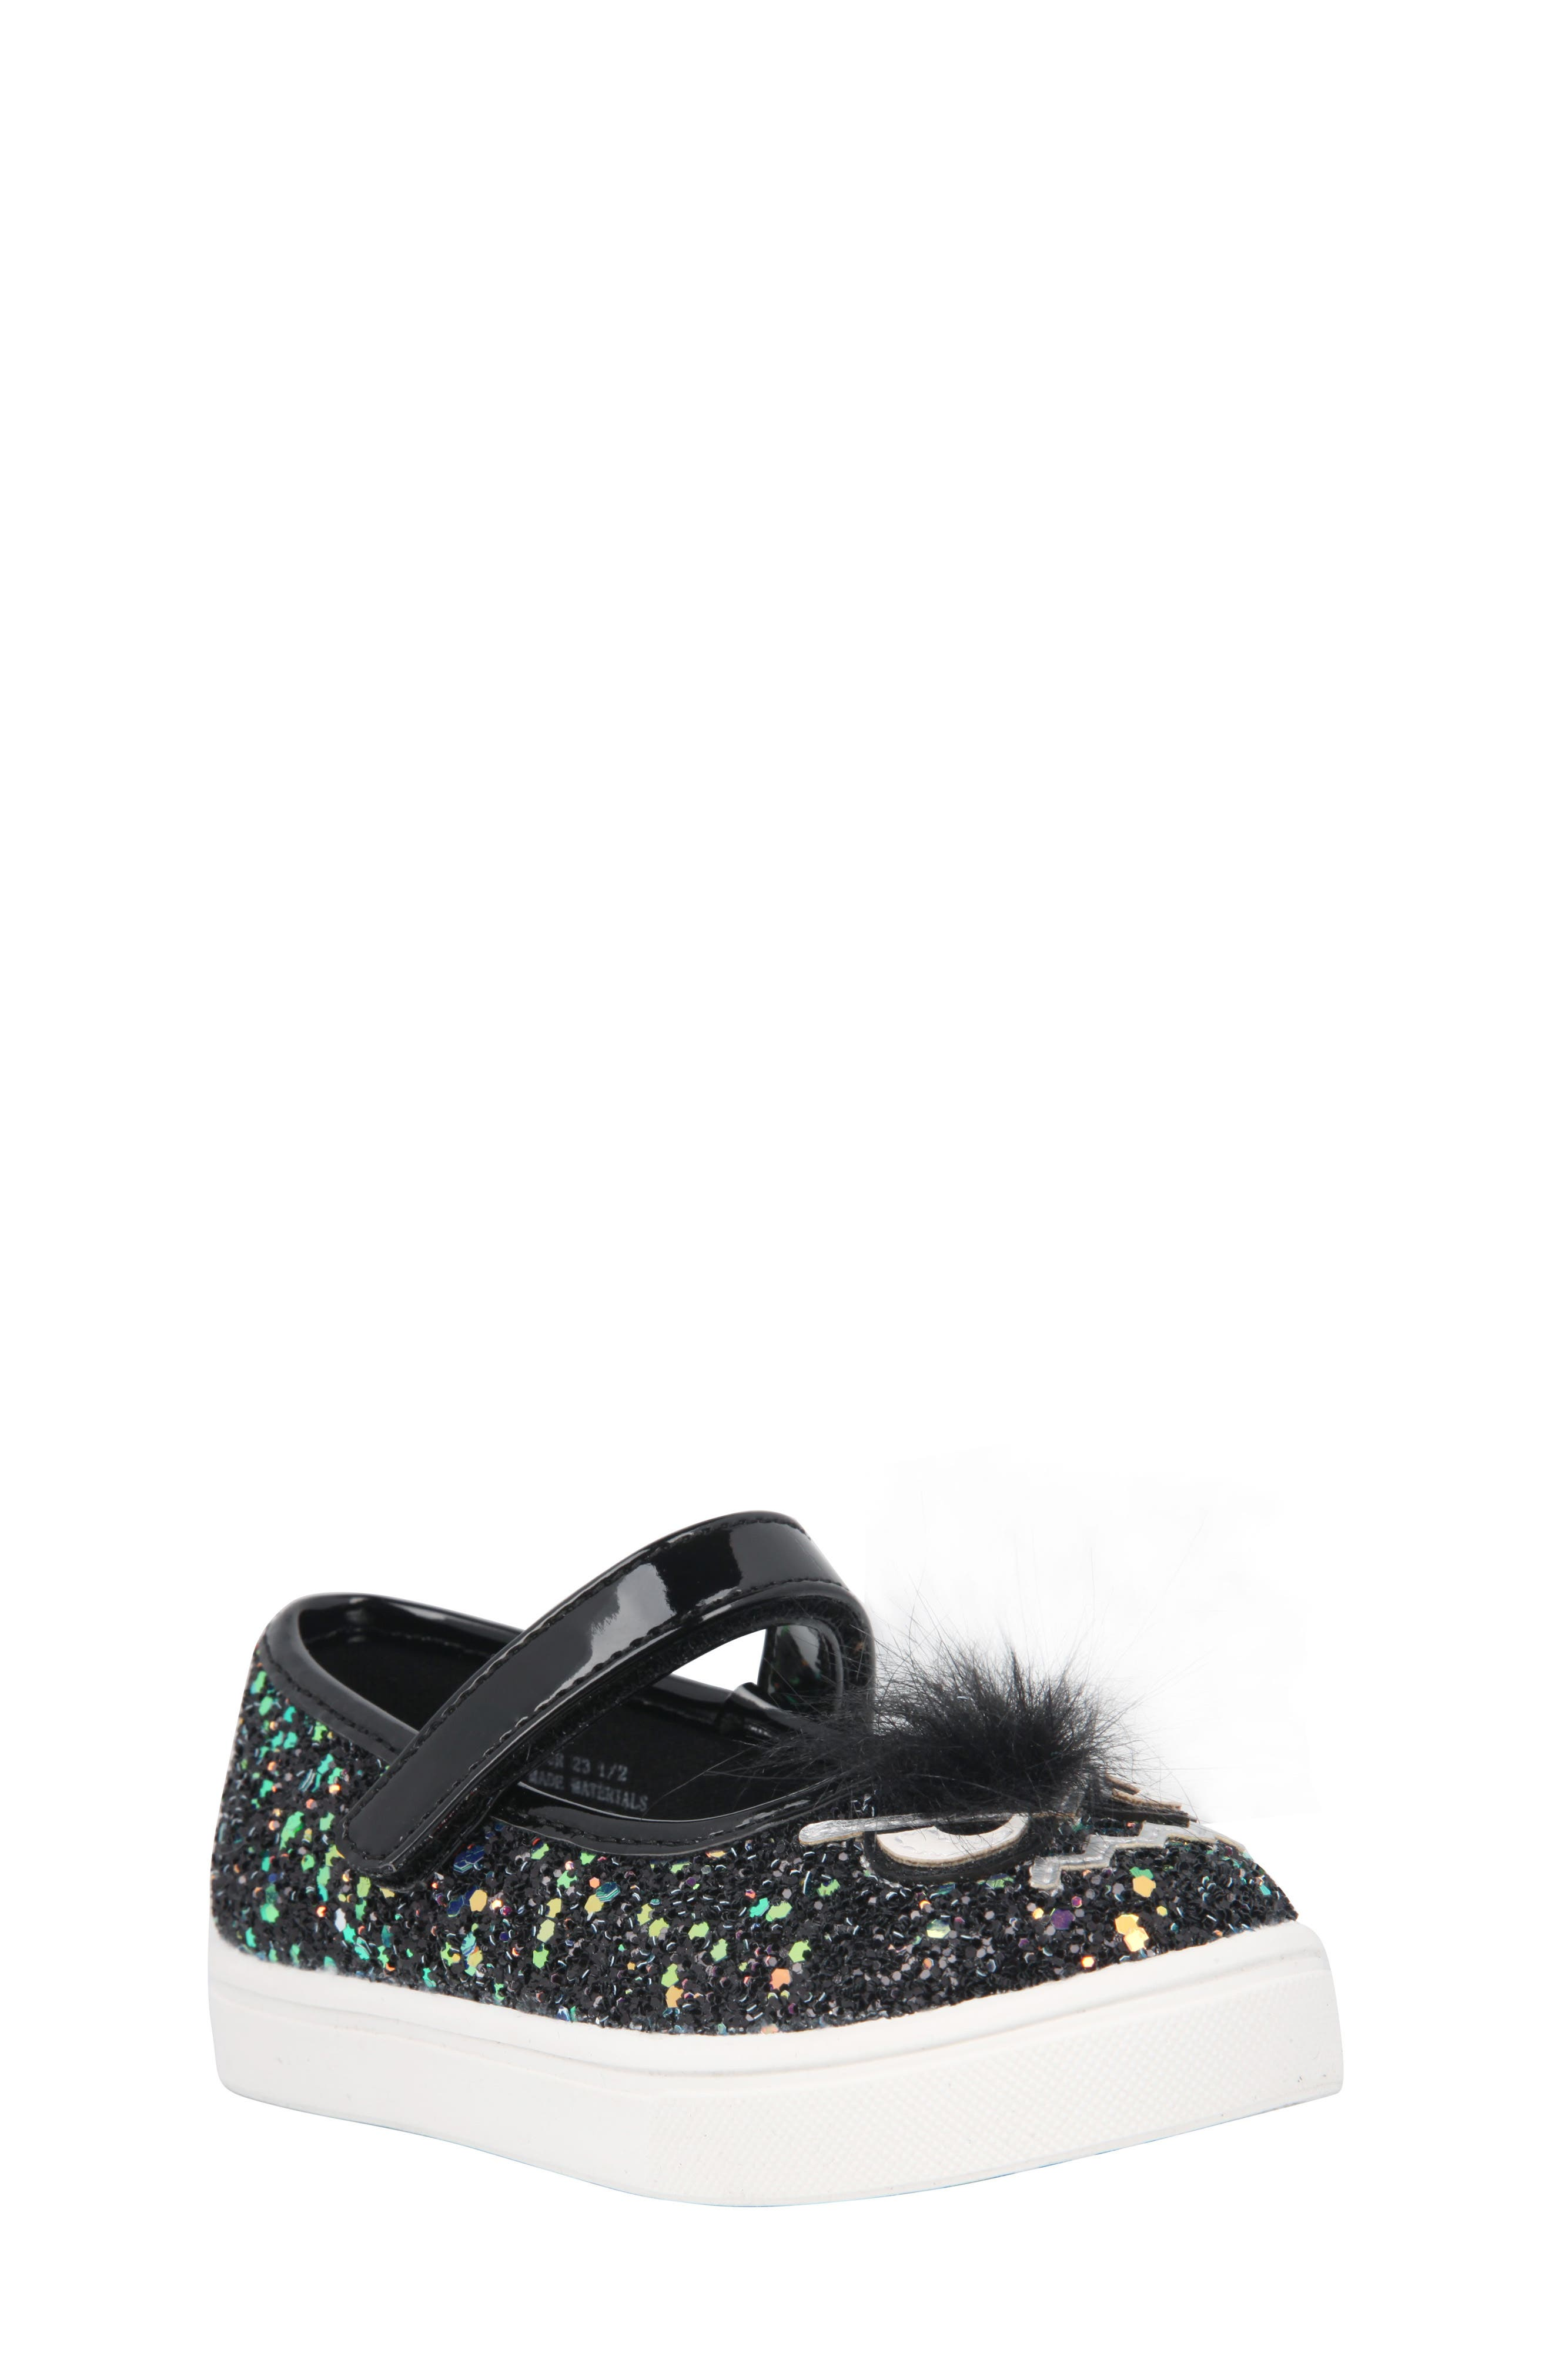 Alyx Faux Fur Glittery Mary Jane Sneaker,                             Main thumbnail 1, color,                             Black Chunky Glitter